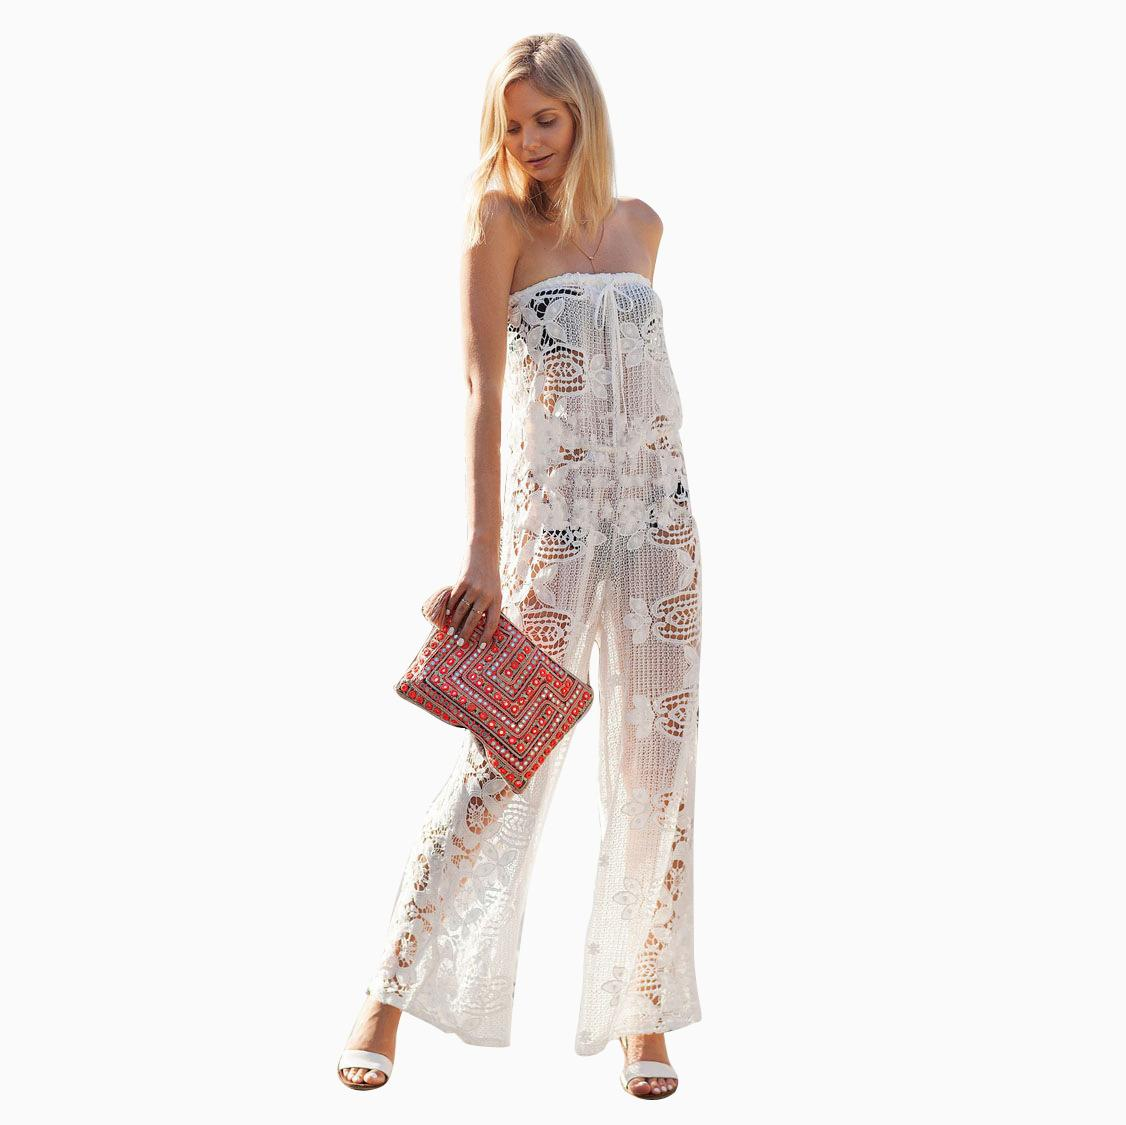 4a6d78107fa 2019 2015 Summer White Lace Women Playsuit Embroidery Floral Long Jumpsuit  Sexy Transparent Strapless Backless Rompers Beach Club Wear WI33 From ...